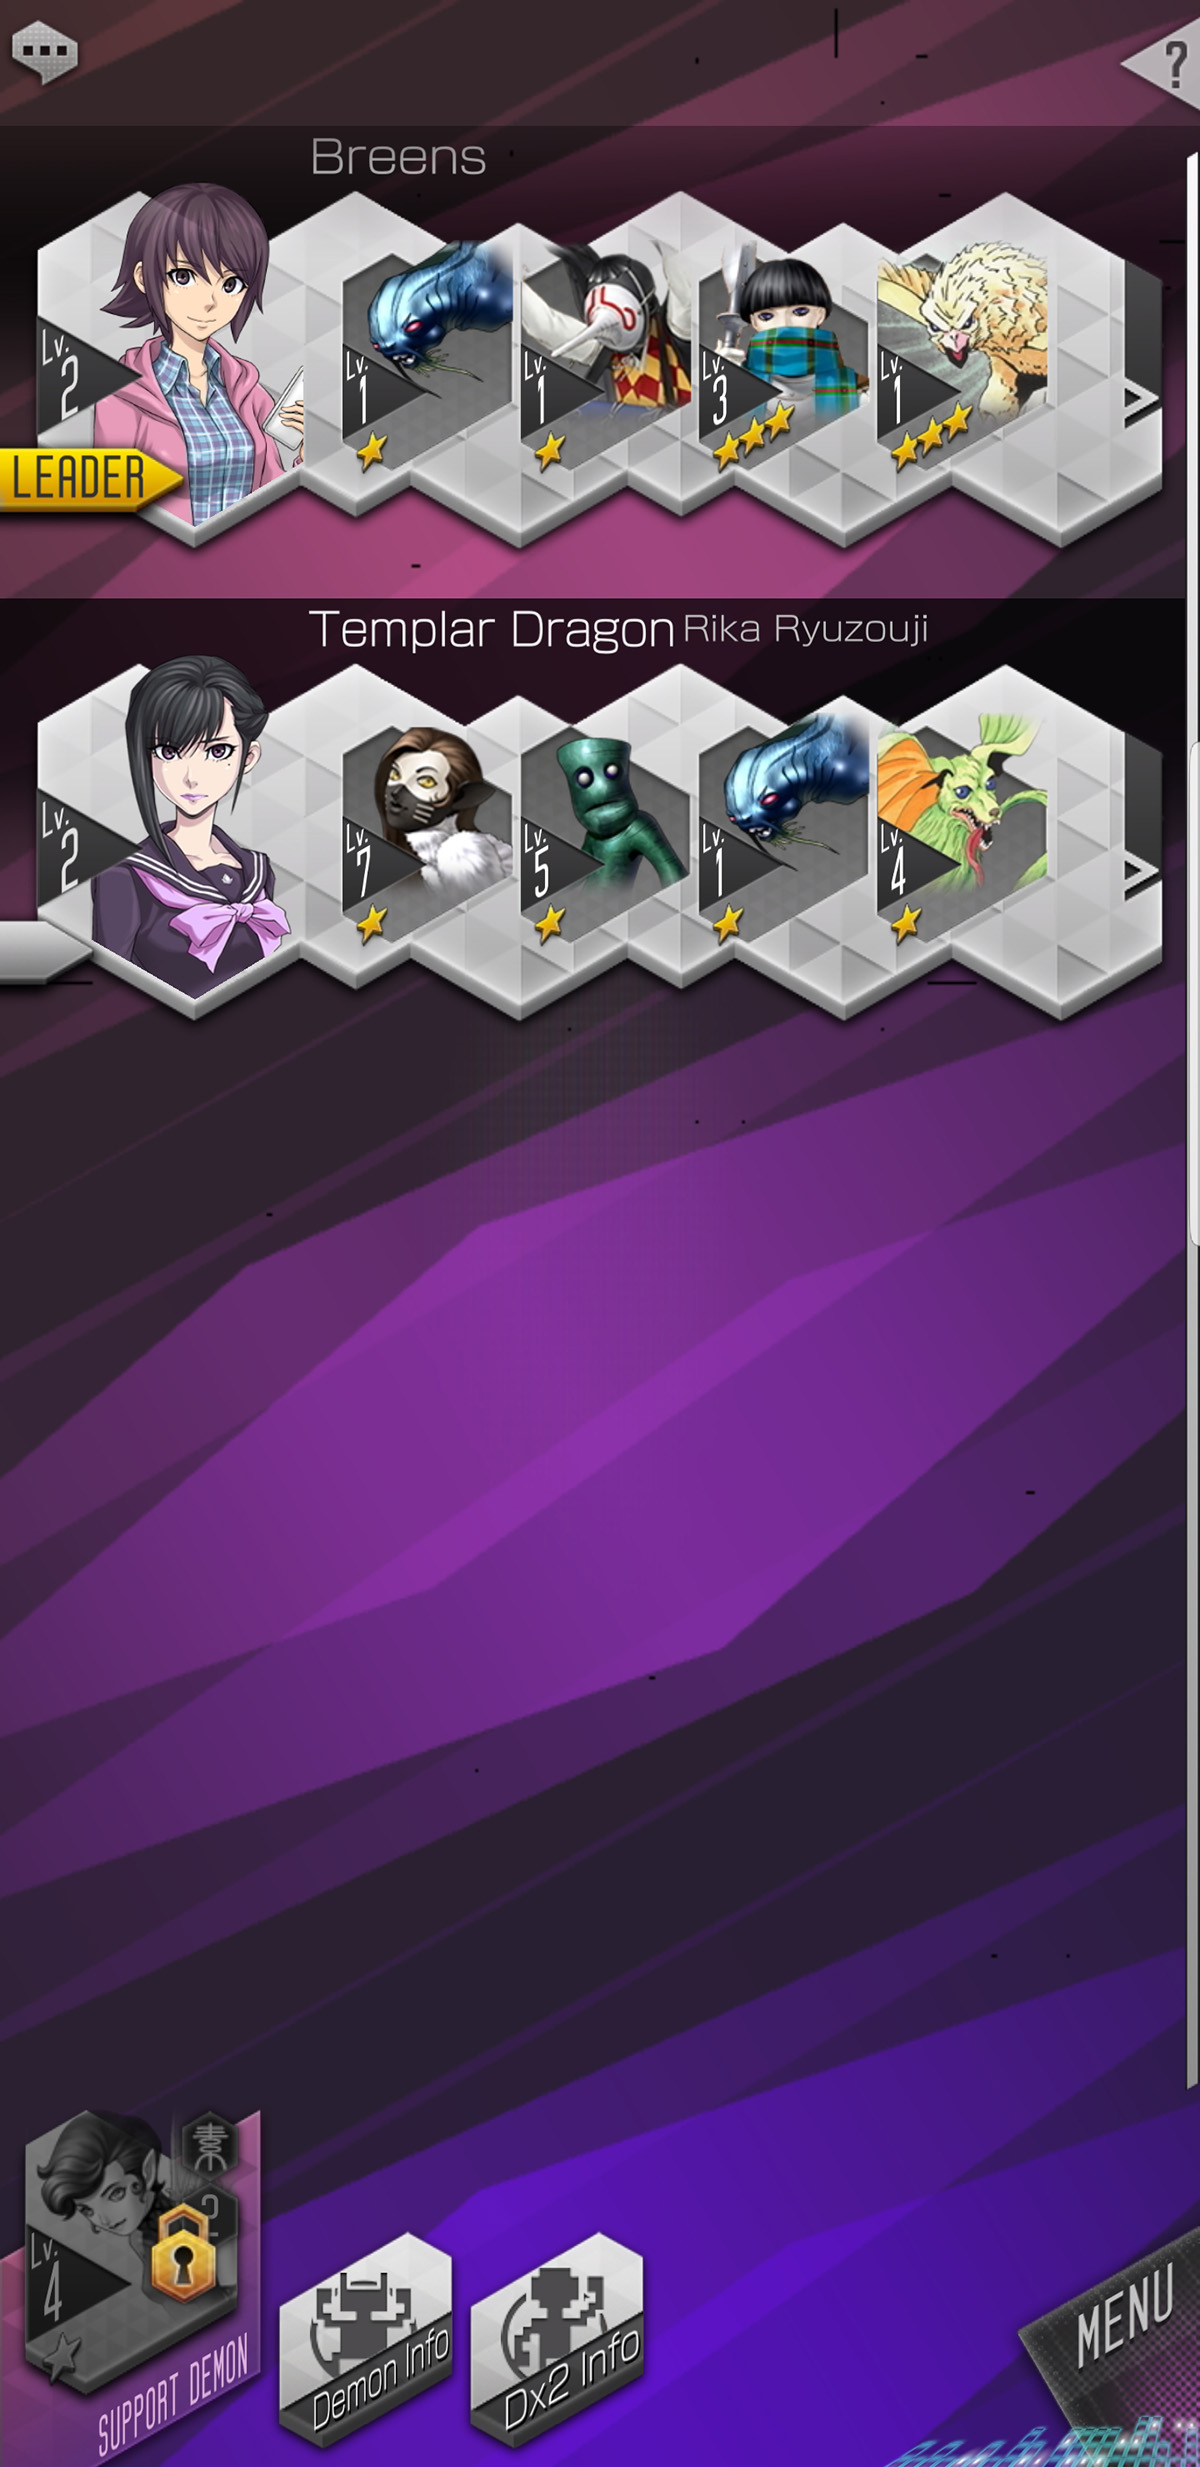 Shin Megami Tensei Liberation Dx2 cheats and tips - Everything you